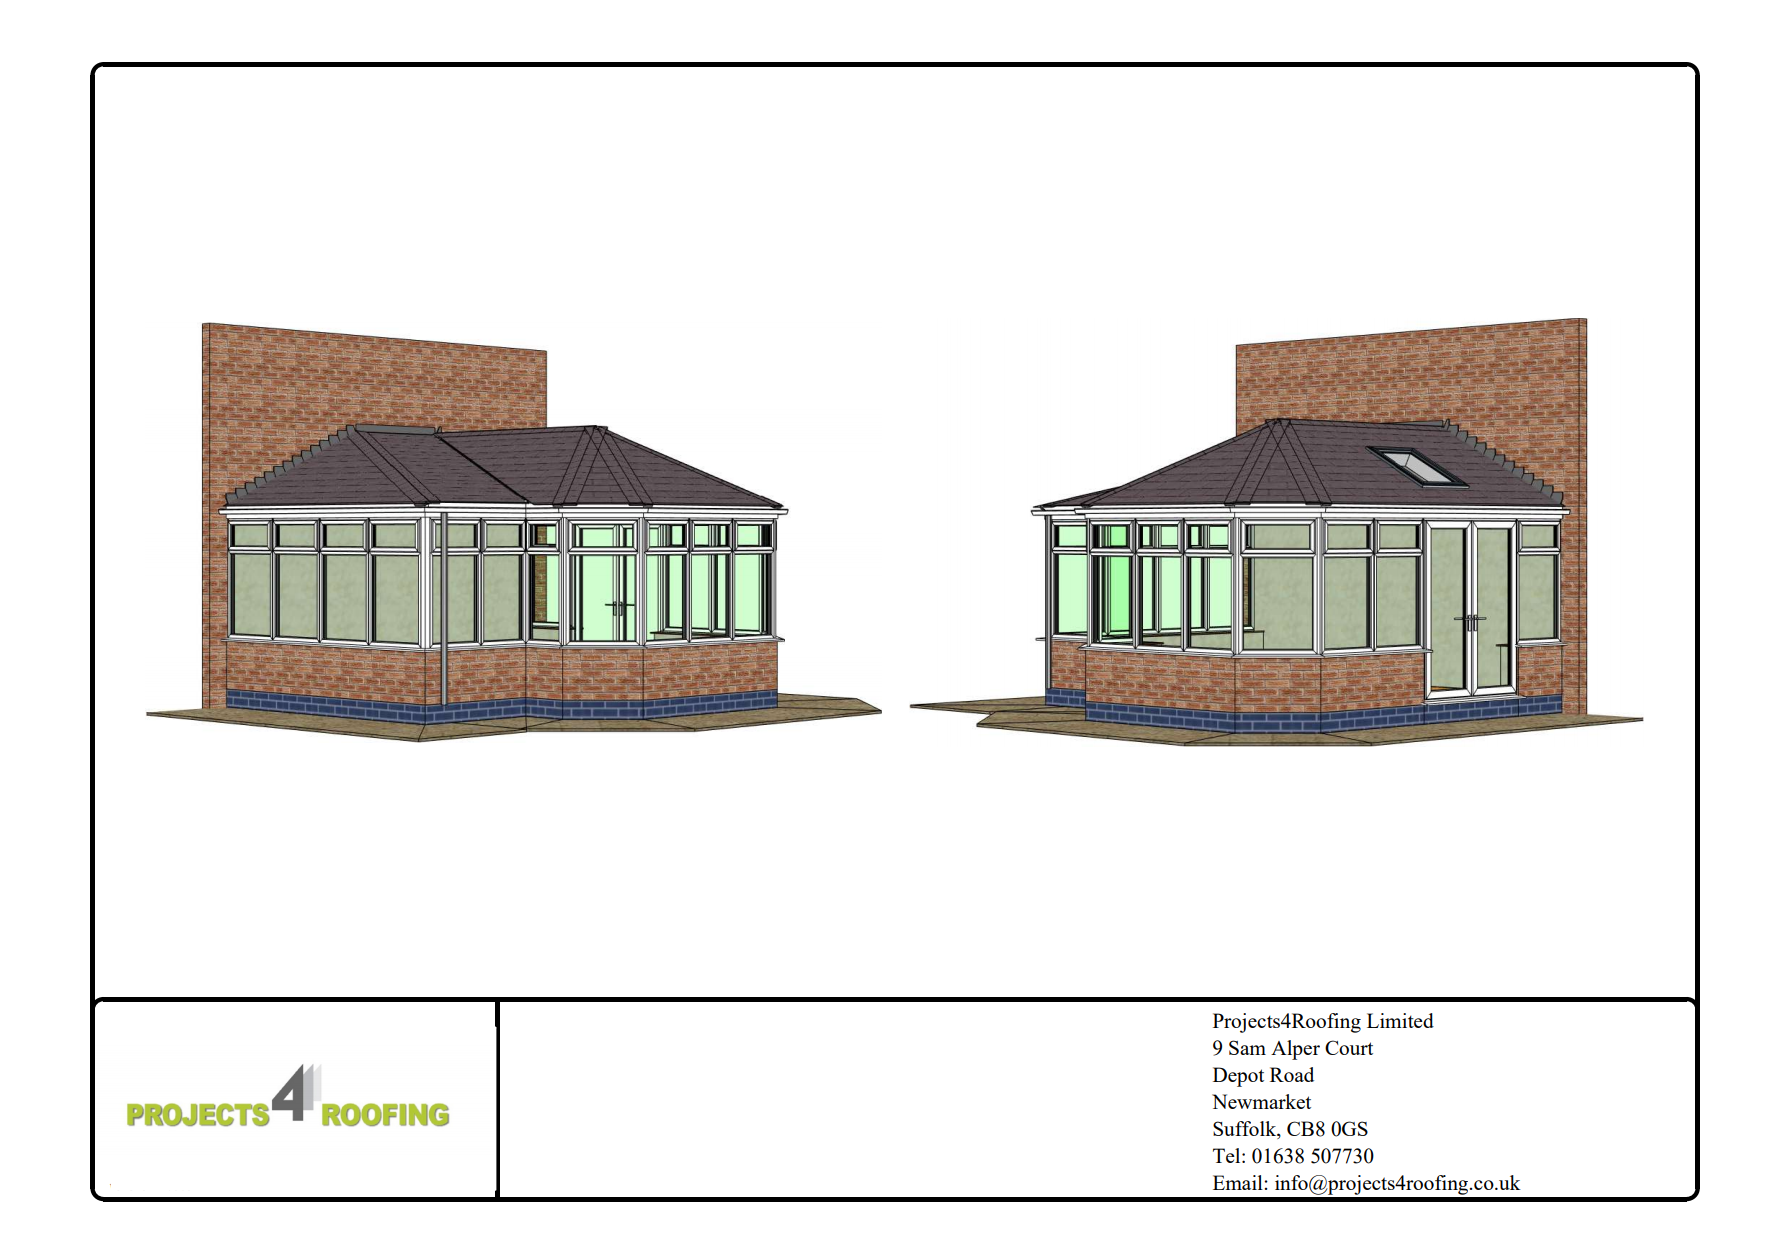 CAD conservatory roof drawings from Projects 4 Roofing